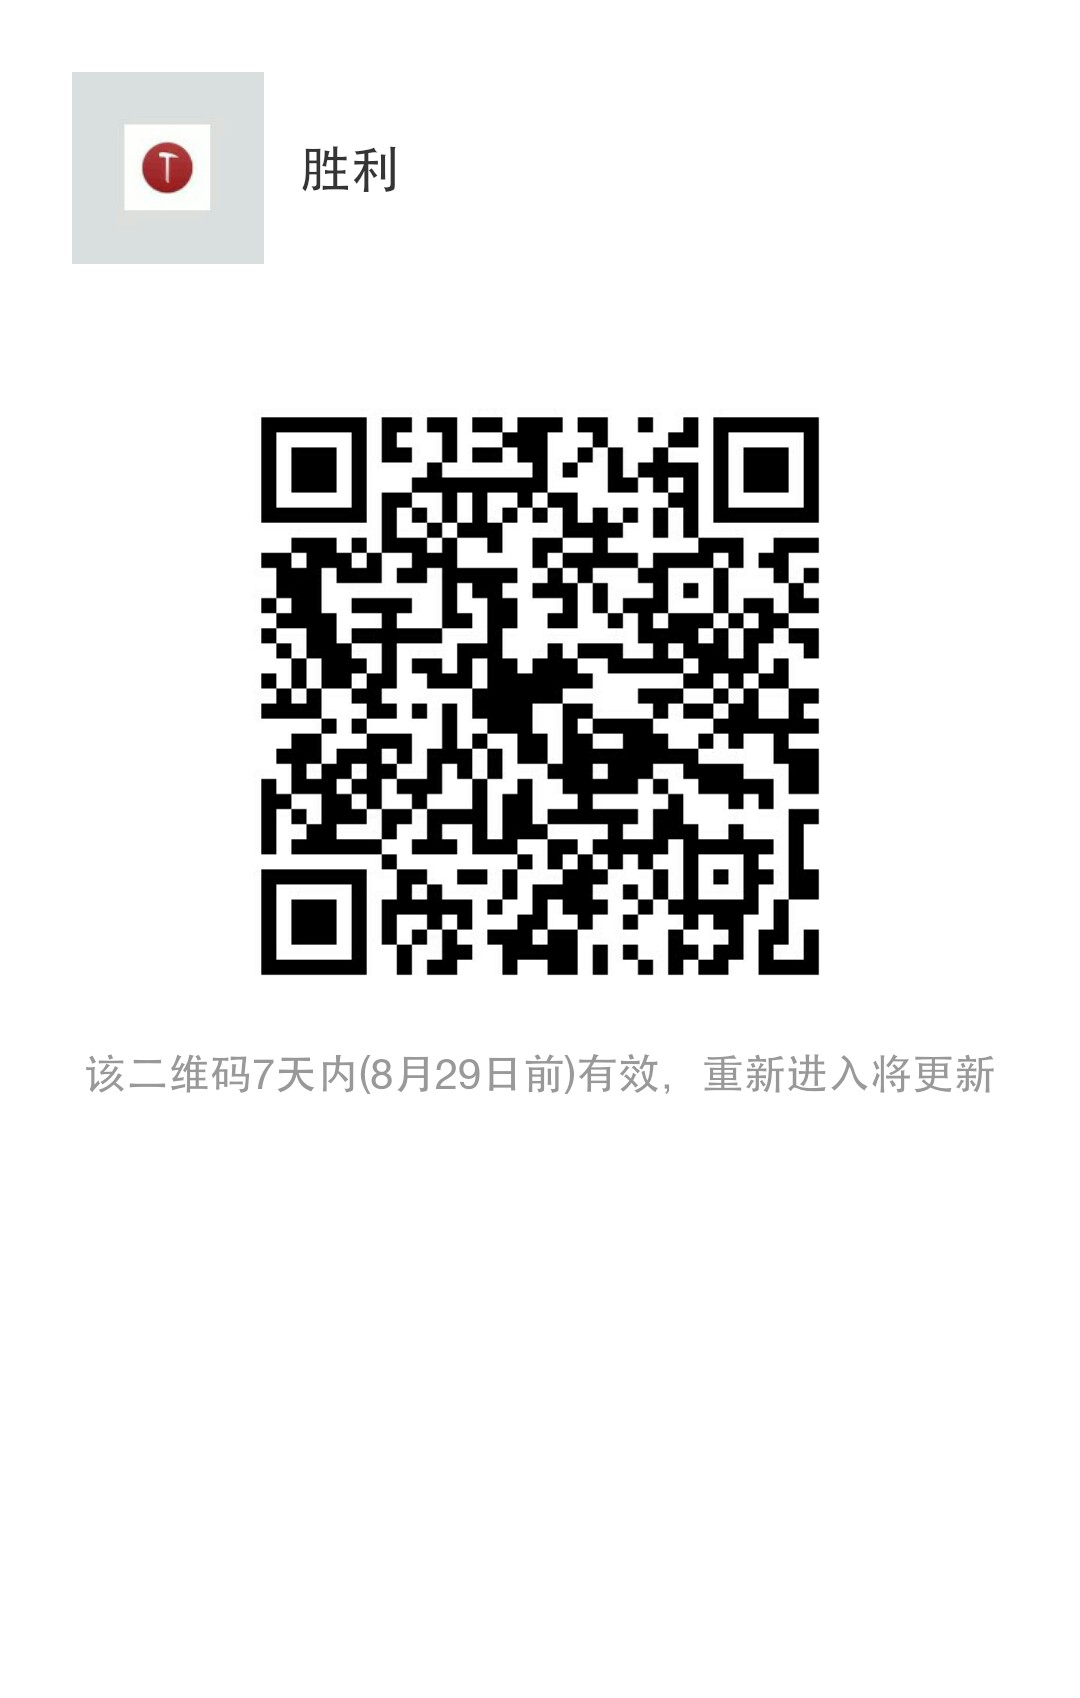 mmqrcode1471871710311_compress.png